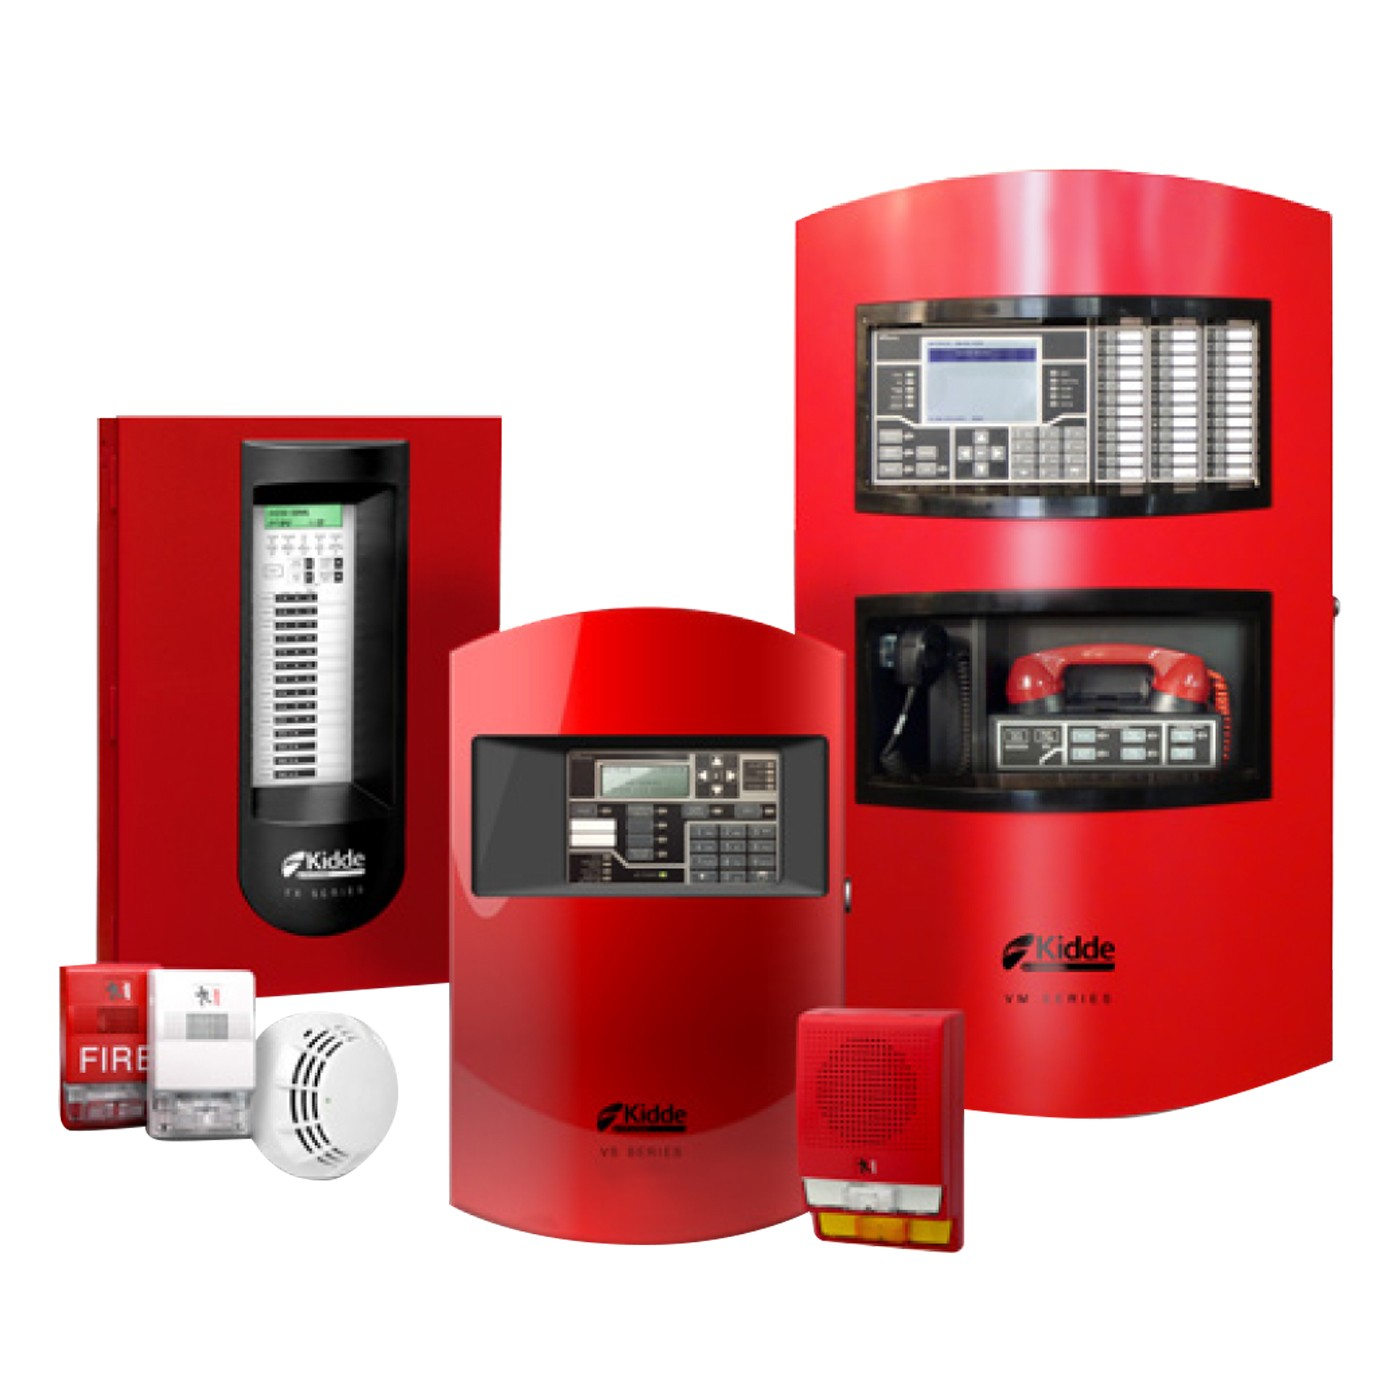 datche fire detection alarm systems